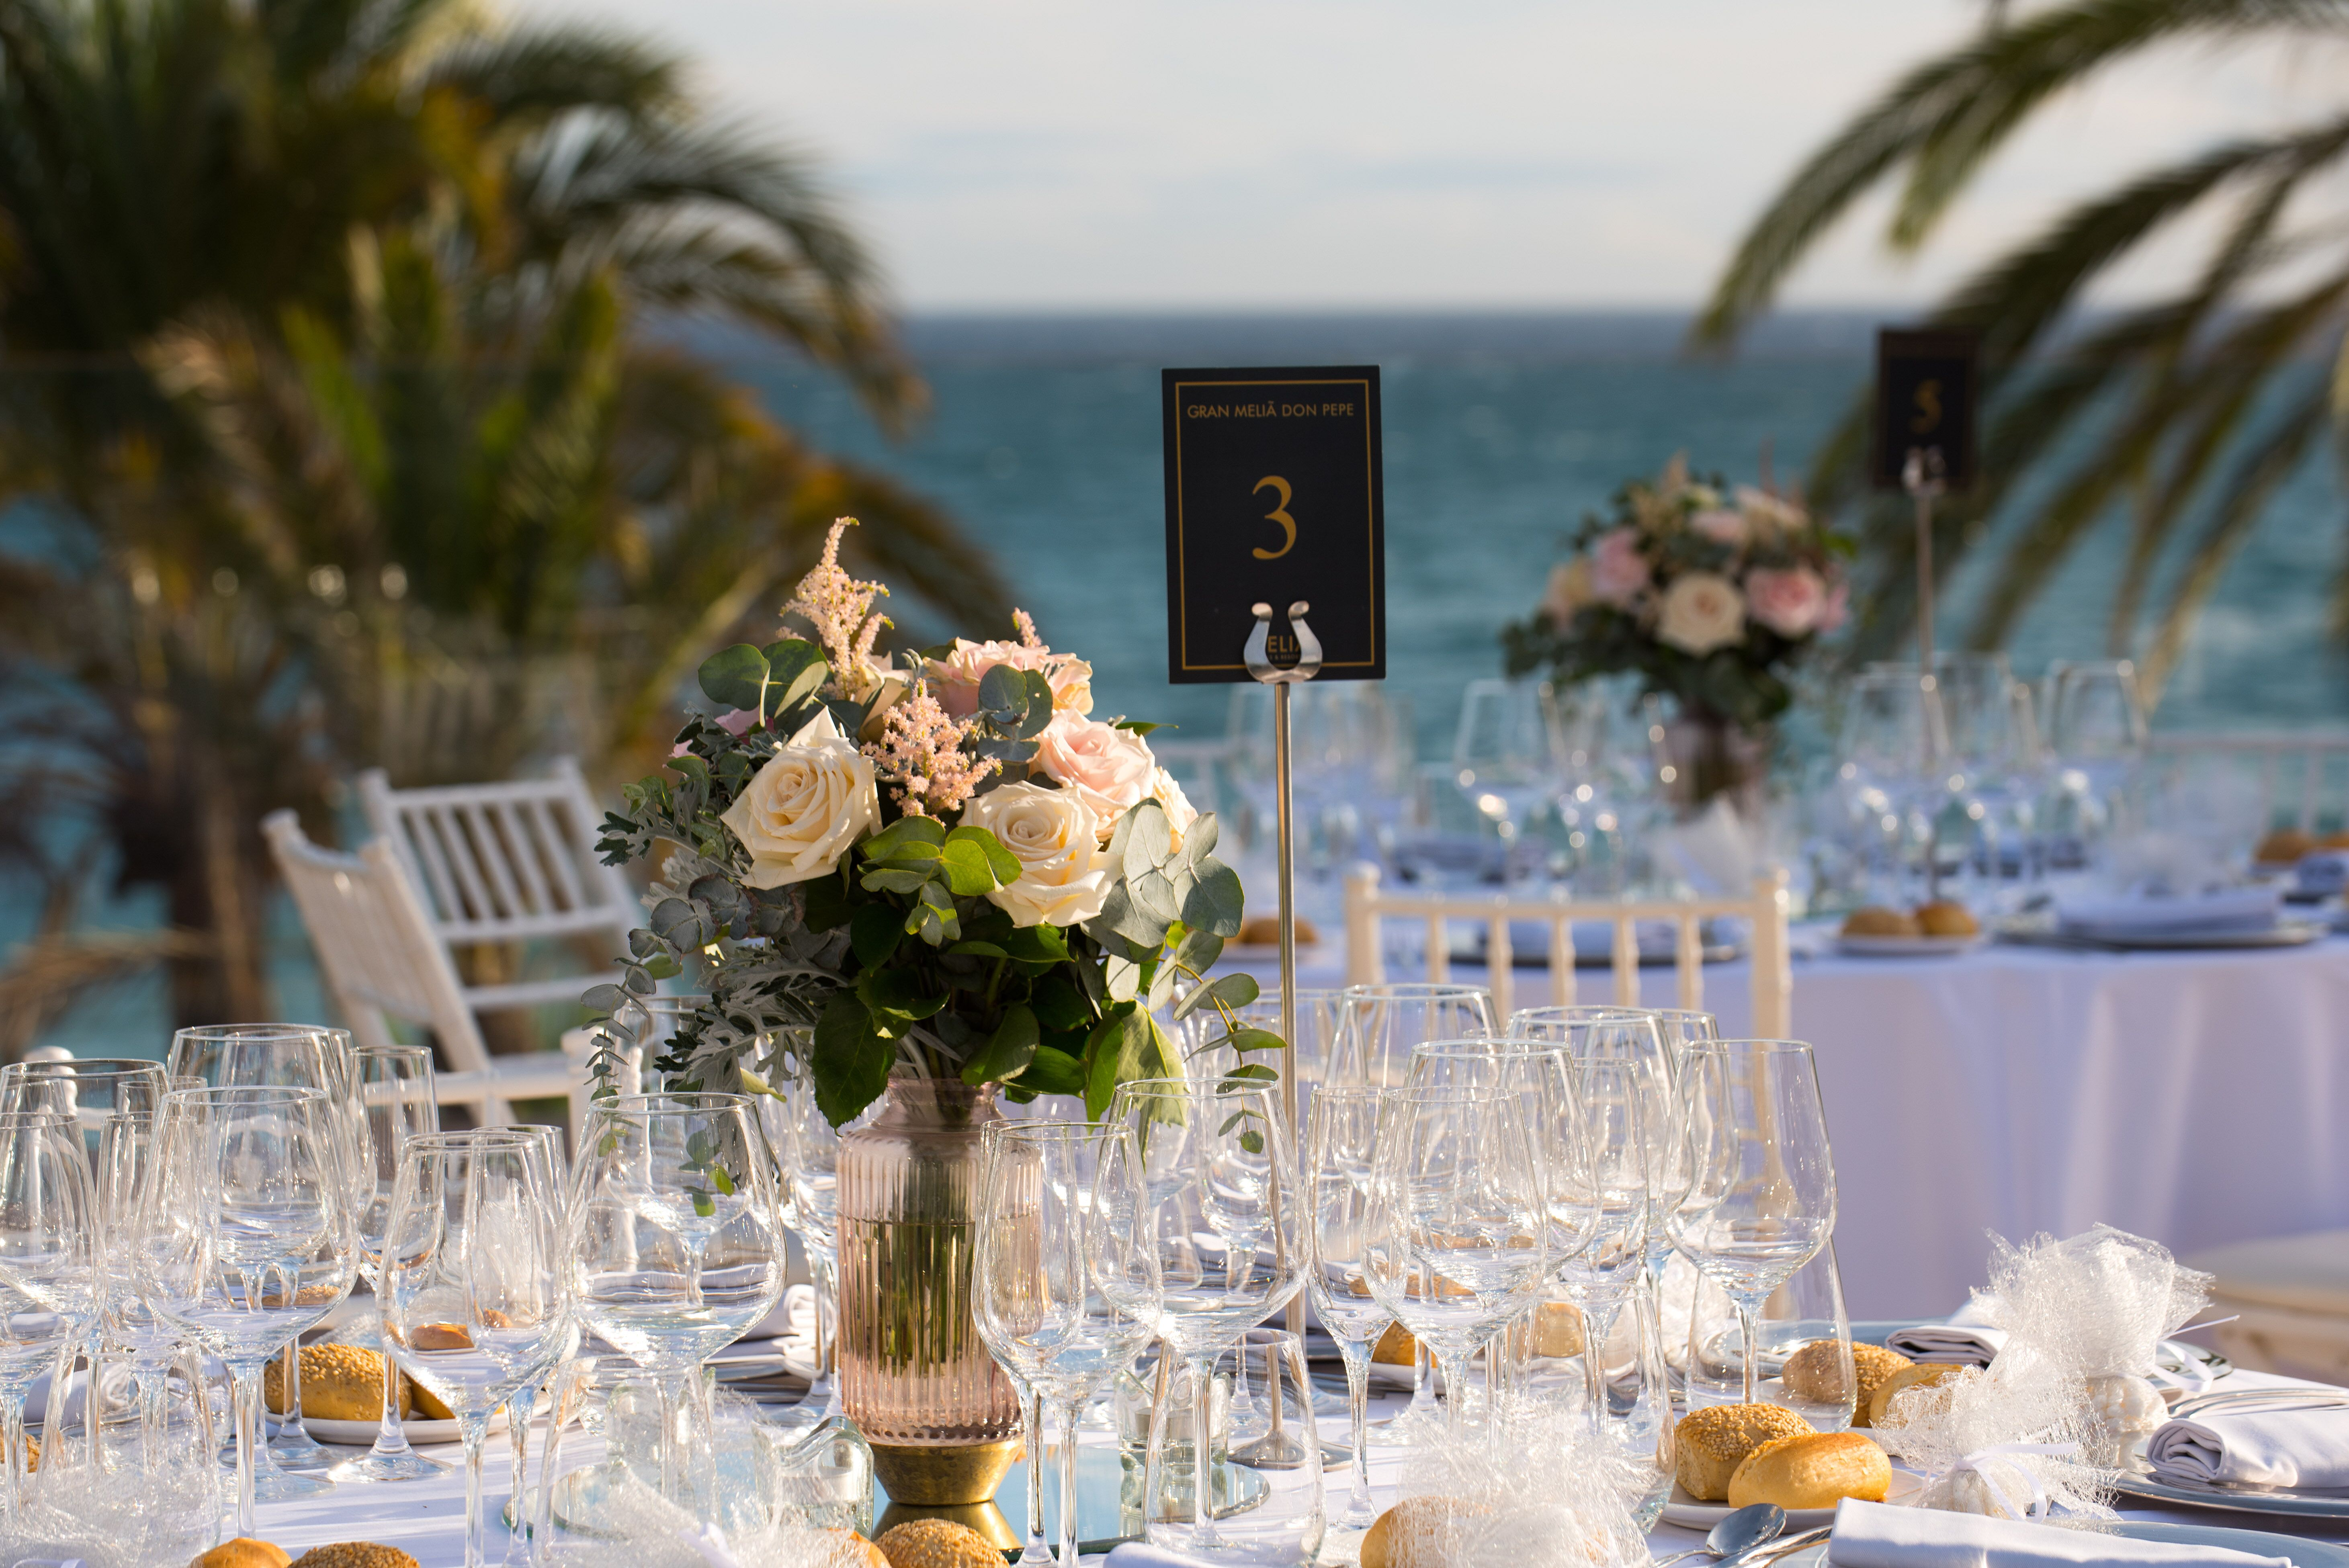 Guests dined elegantly, al freso, by the sea